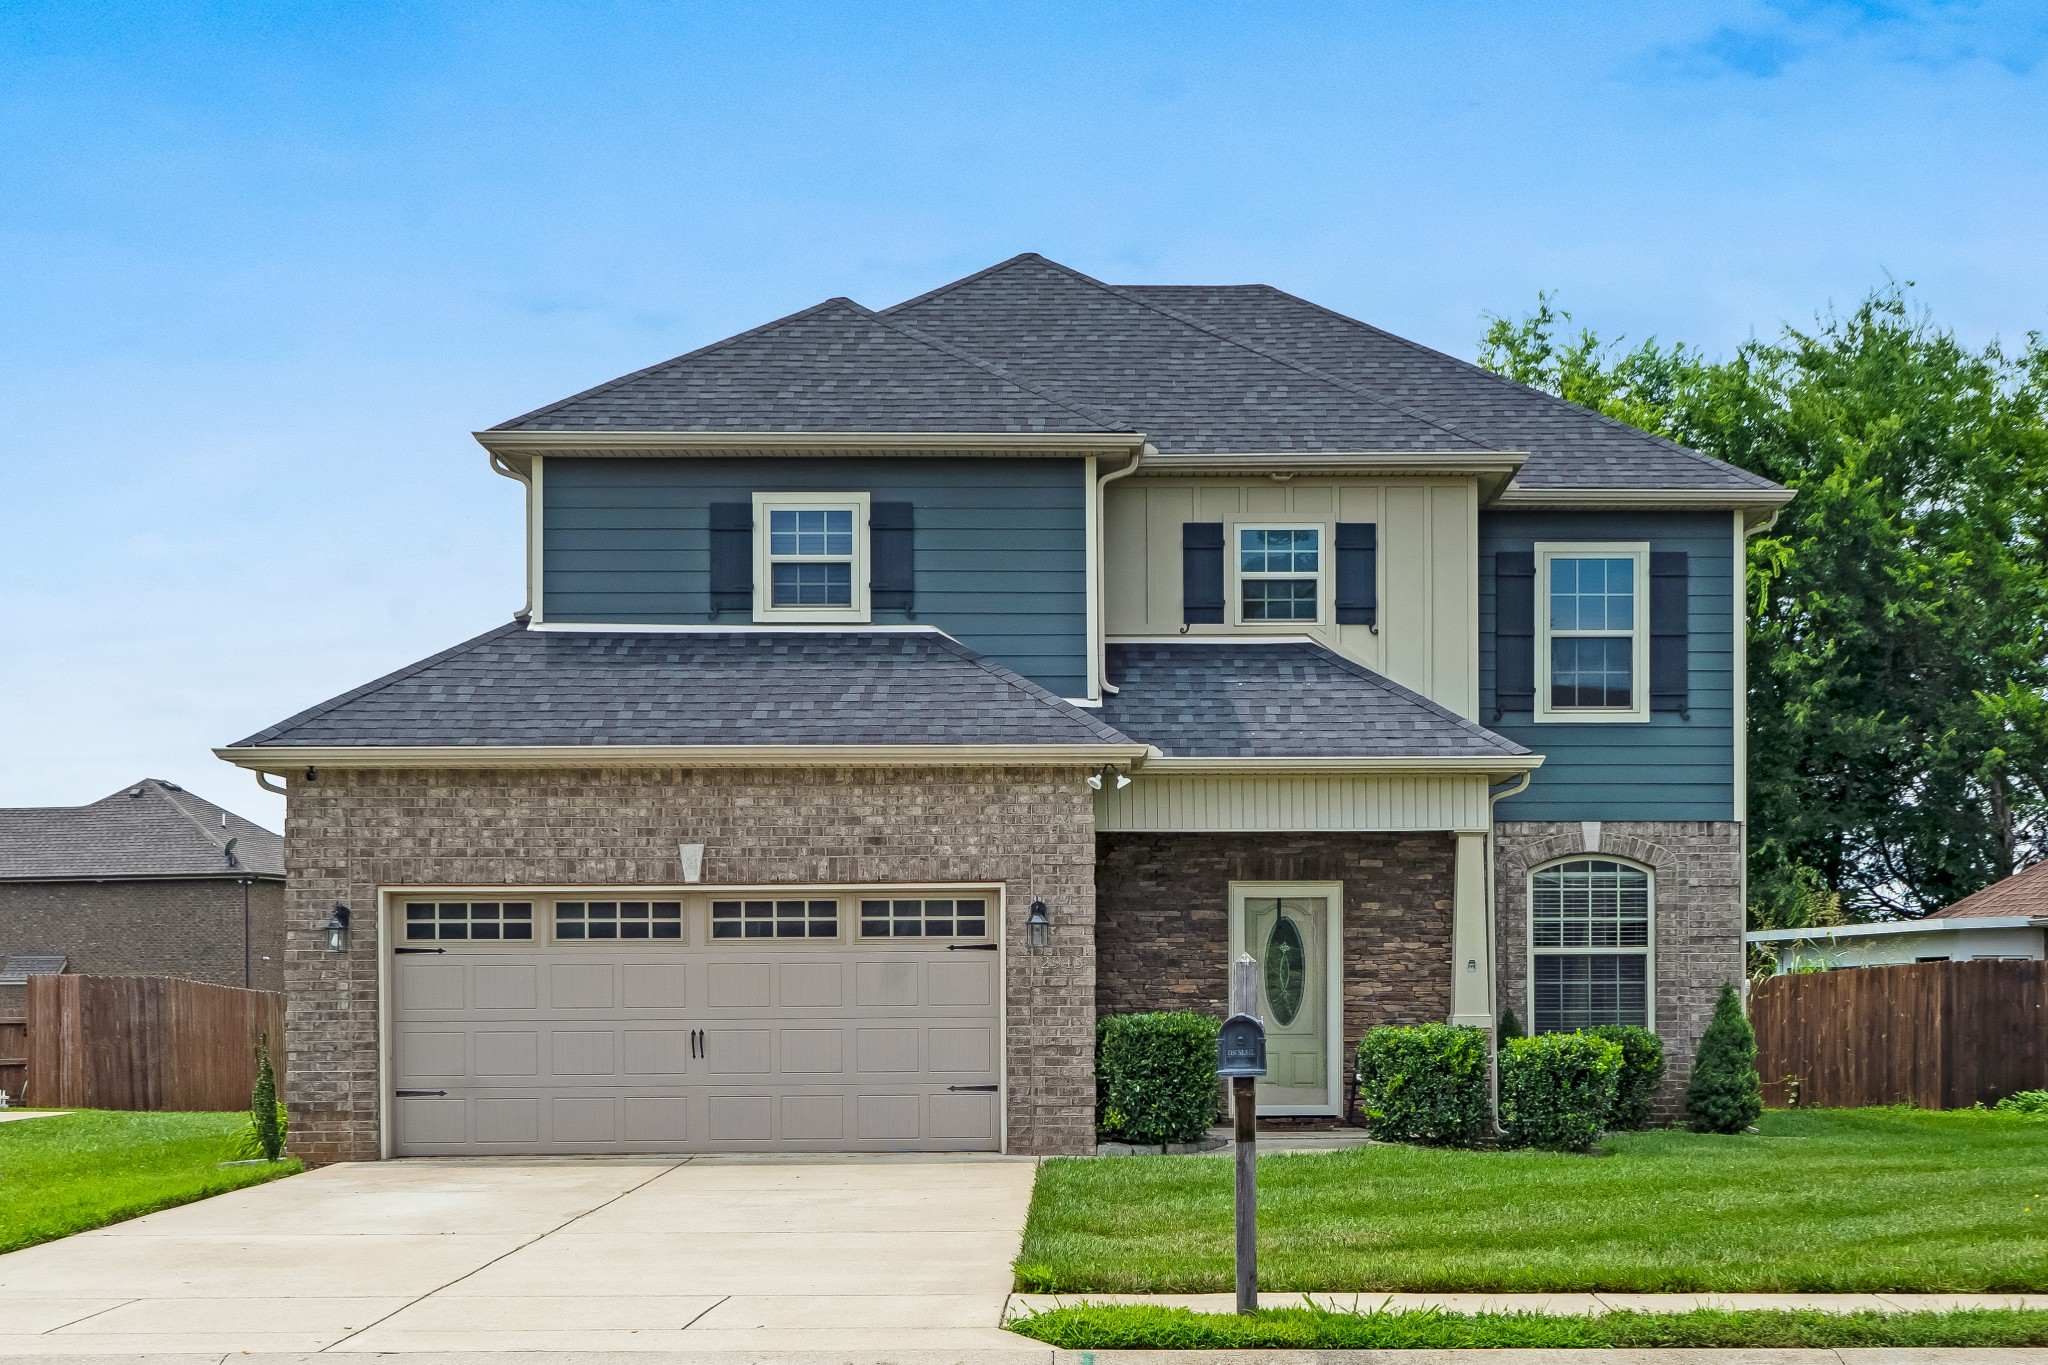 Gorgeous well-maintained home, great location; office downstairs, all bedrooms and bonus upstairs, fenced in backyard; washer and dryer remain; 2-car garage showings 7/29/21 at noon through 8/1/21 at 4pm; offers due by 8pm on 8/1, decision on 8/2